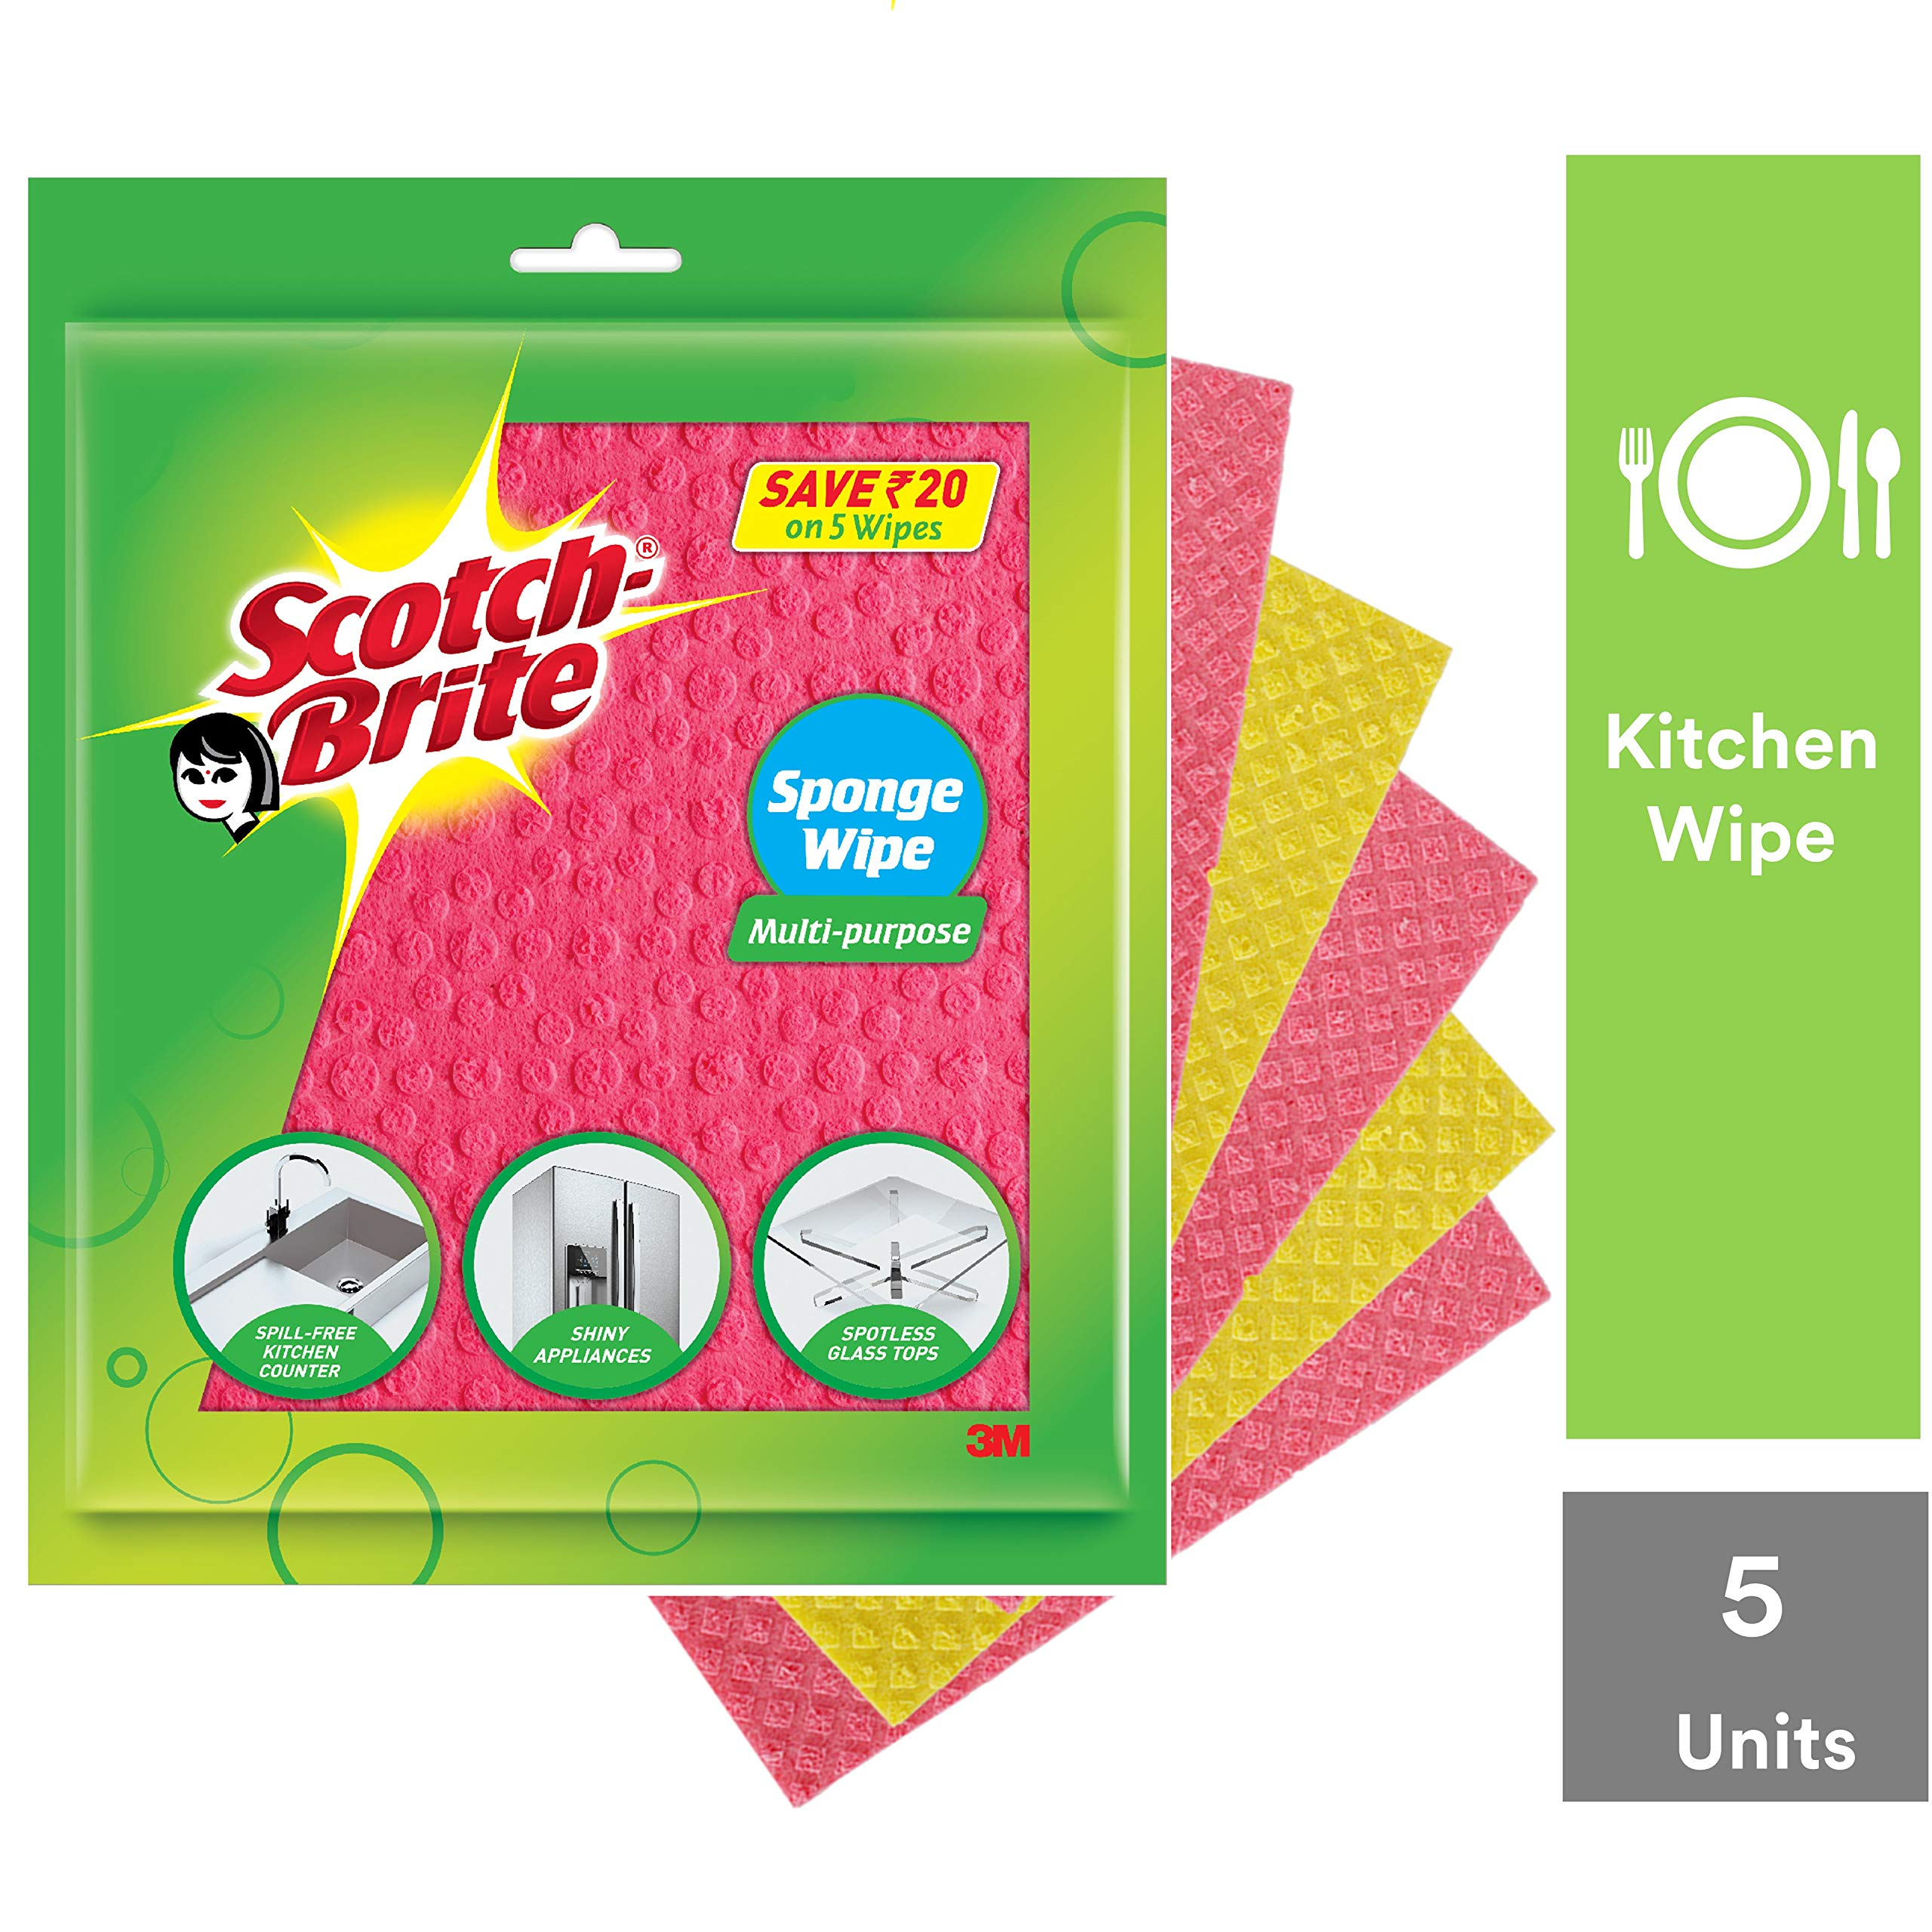 Scotch-Brite Sponge Wipe 5 Pcs pack ( Multipurpose) product image